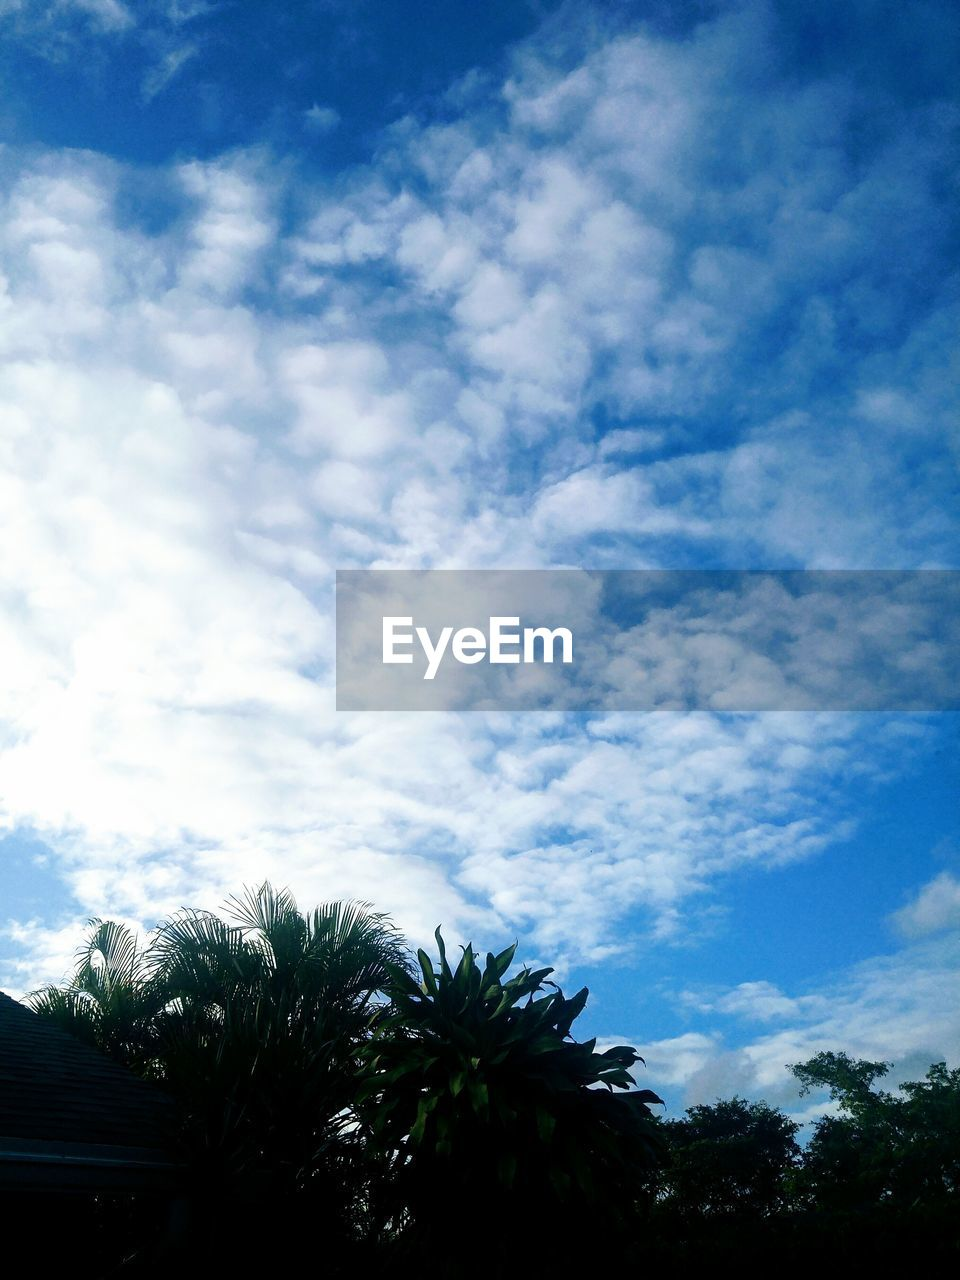 sky, cloud - sky, tree, plant, beauty in nature, low angle view, nature, no people, tranquility, scenics - nature, day, tranquil scene, silhouette, growth, outdoors, blue, non-urban scene, palm tree, tropical climate